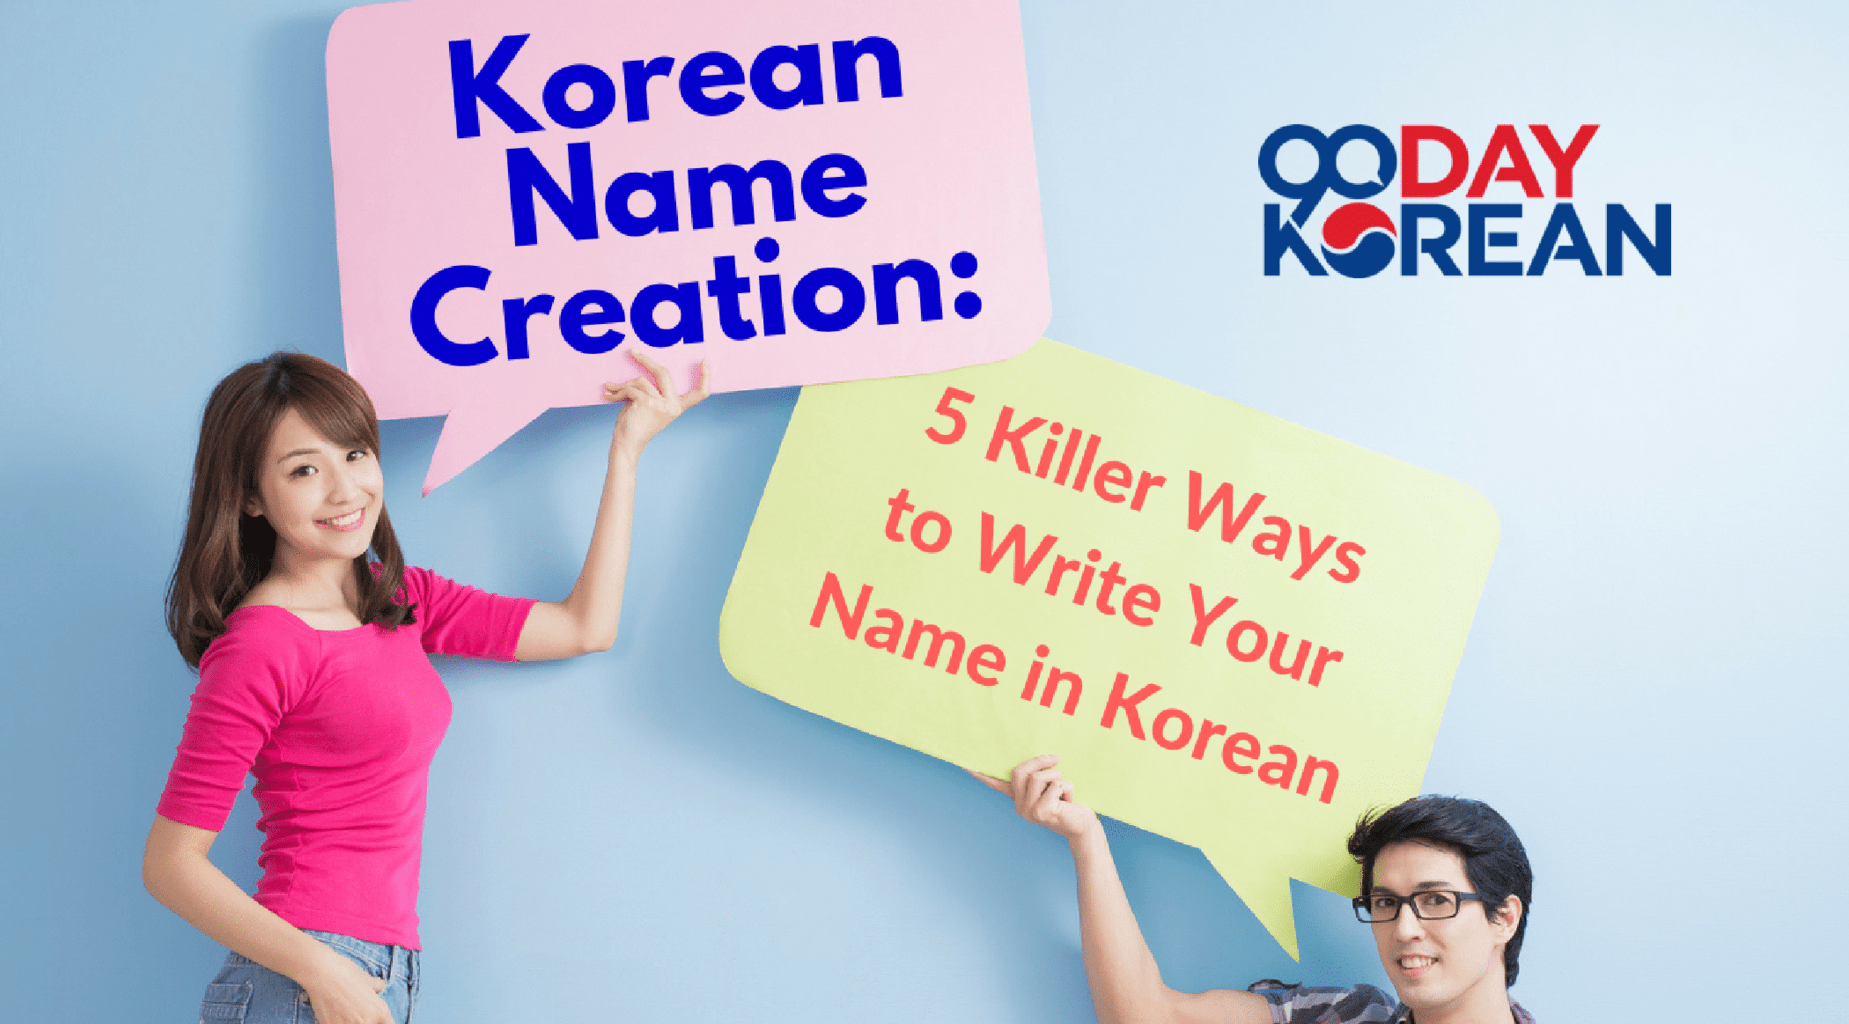 http://www.90daykorean.com/wp-content/uploads/2014/08/Korean-Name-Creation-5-Killer-Ways-to-Write-Your-Name-in-Korean.png